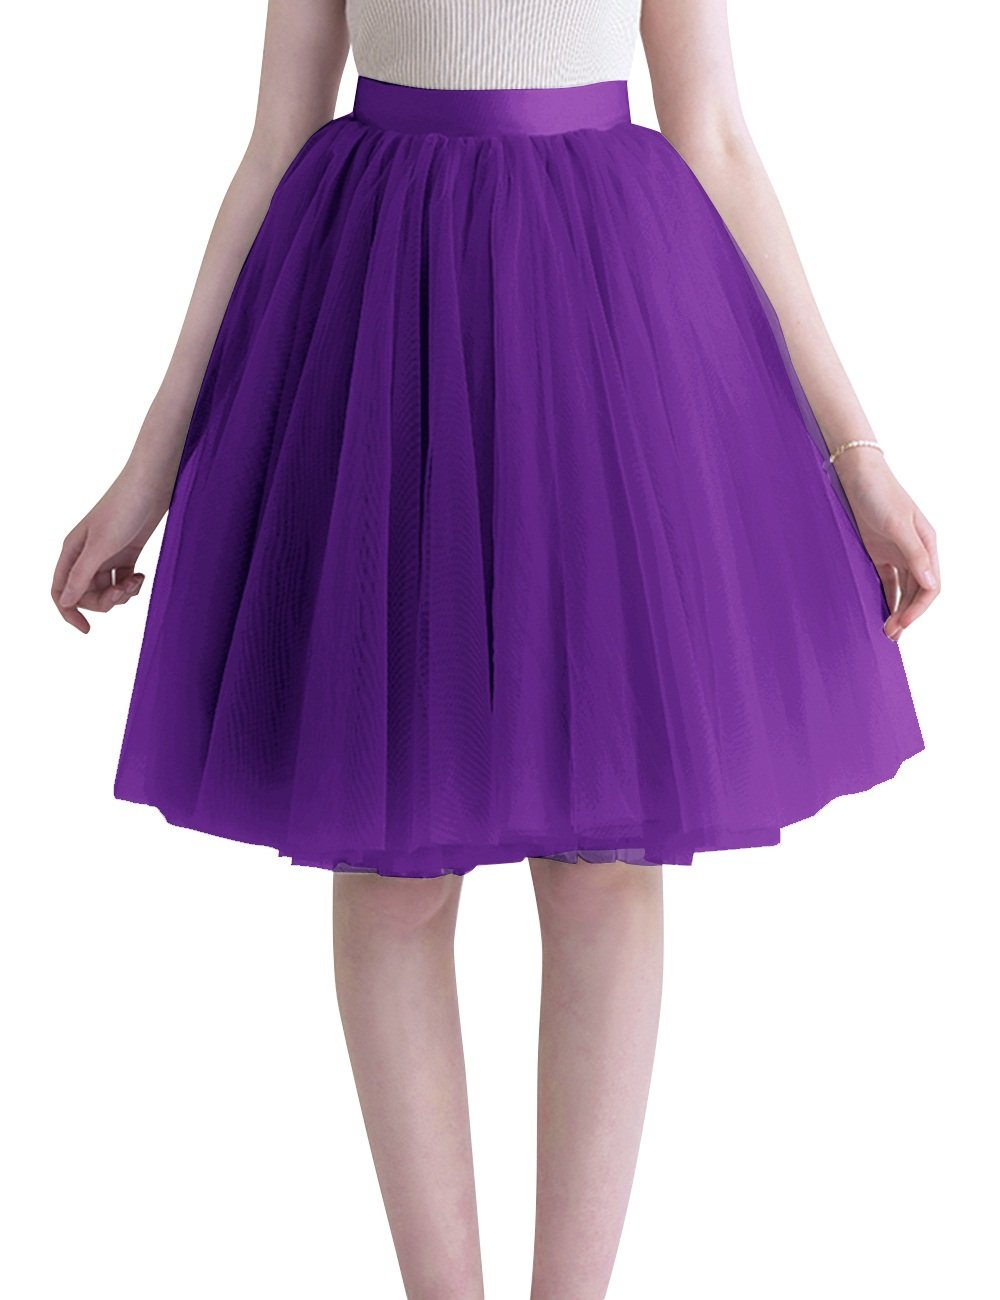 Dasior Women's Tulle Skirts Valentine Holidy Birthdy Party Gifts 2X Plus Purple